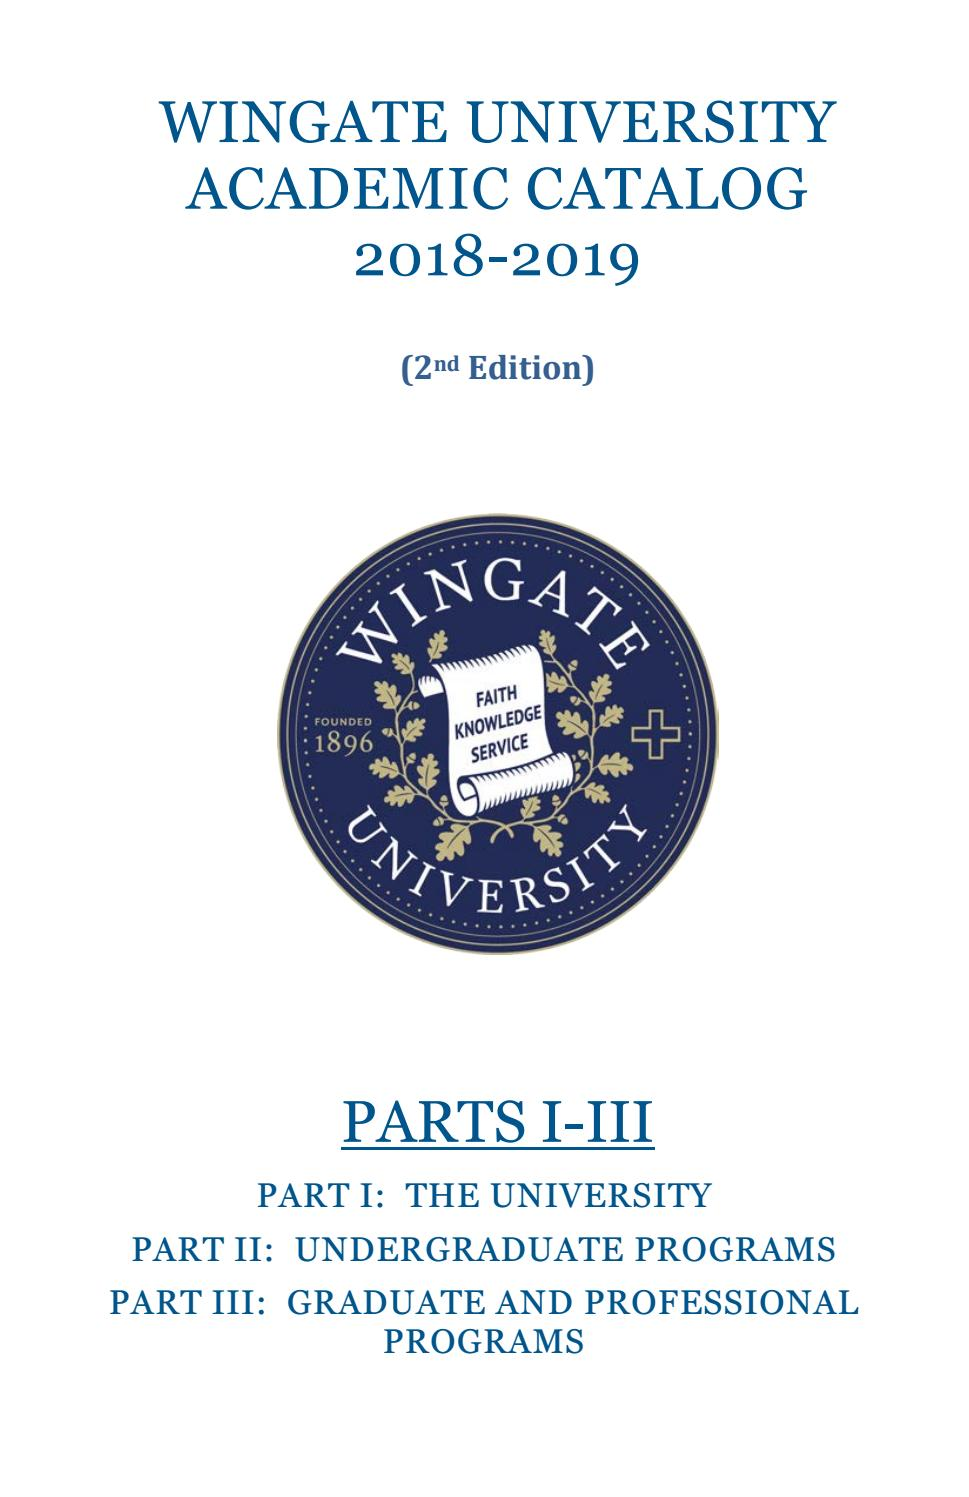 Wingate University Academic Catalog 2018-19 Second Edition by